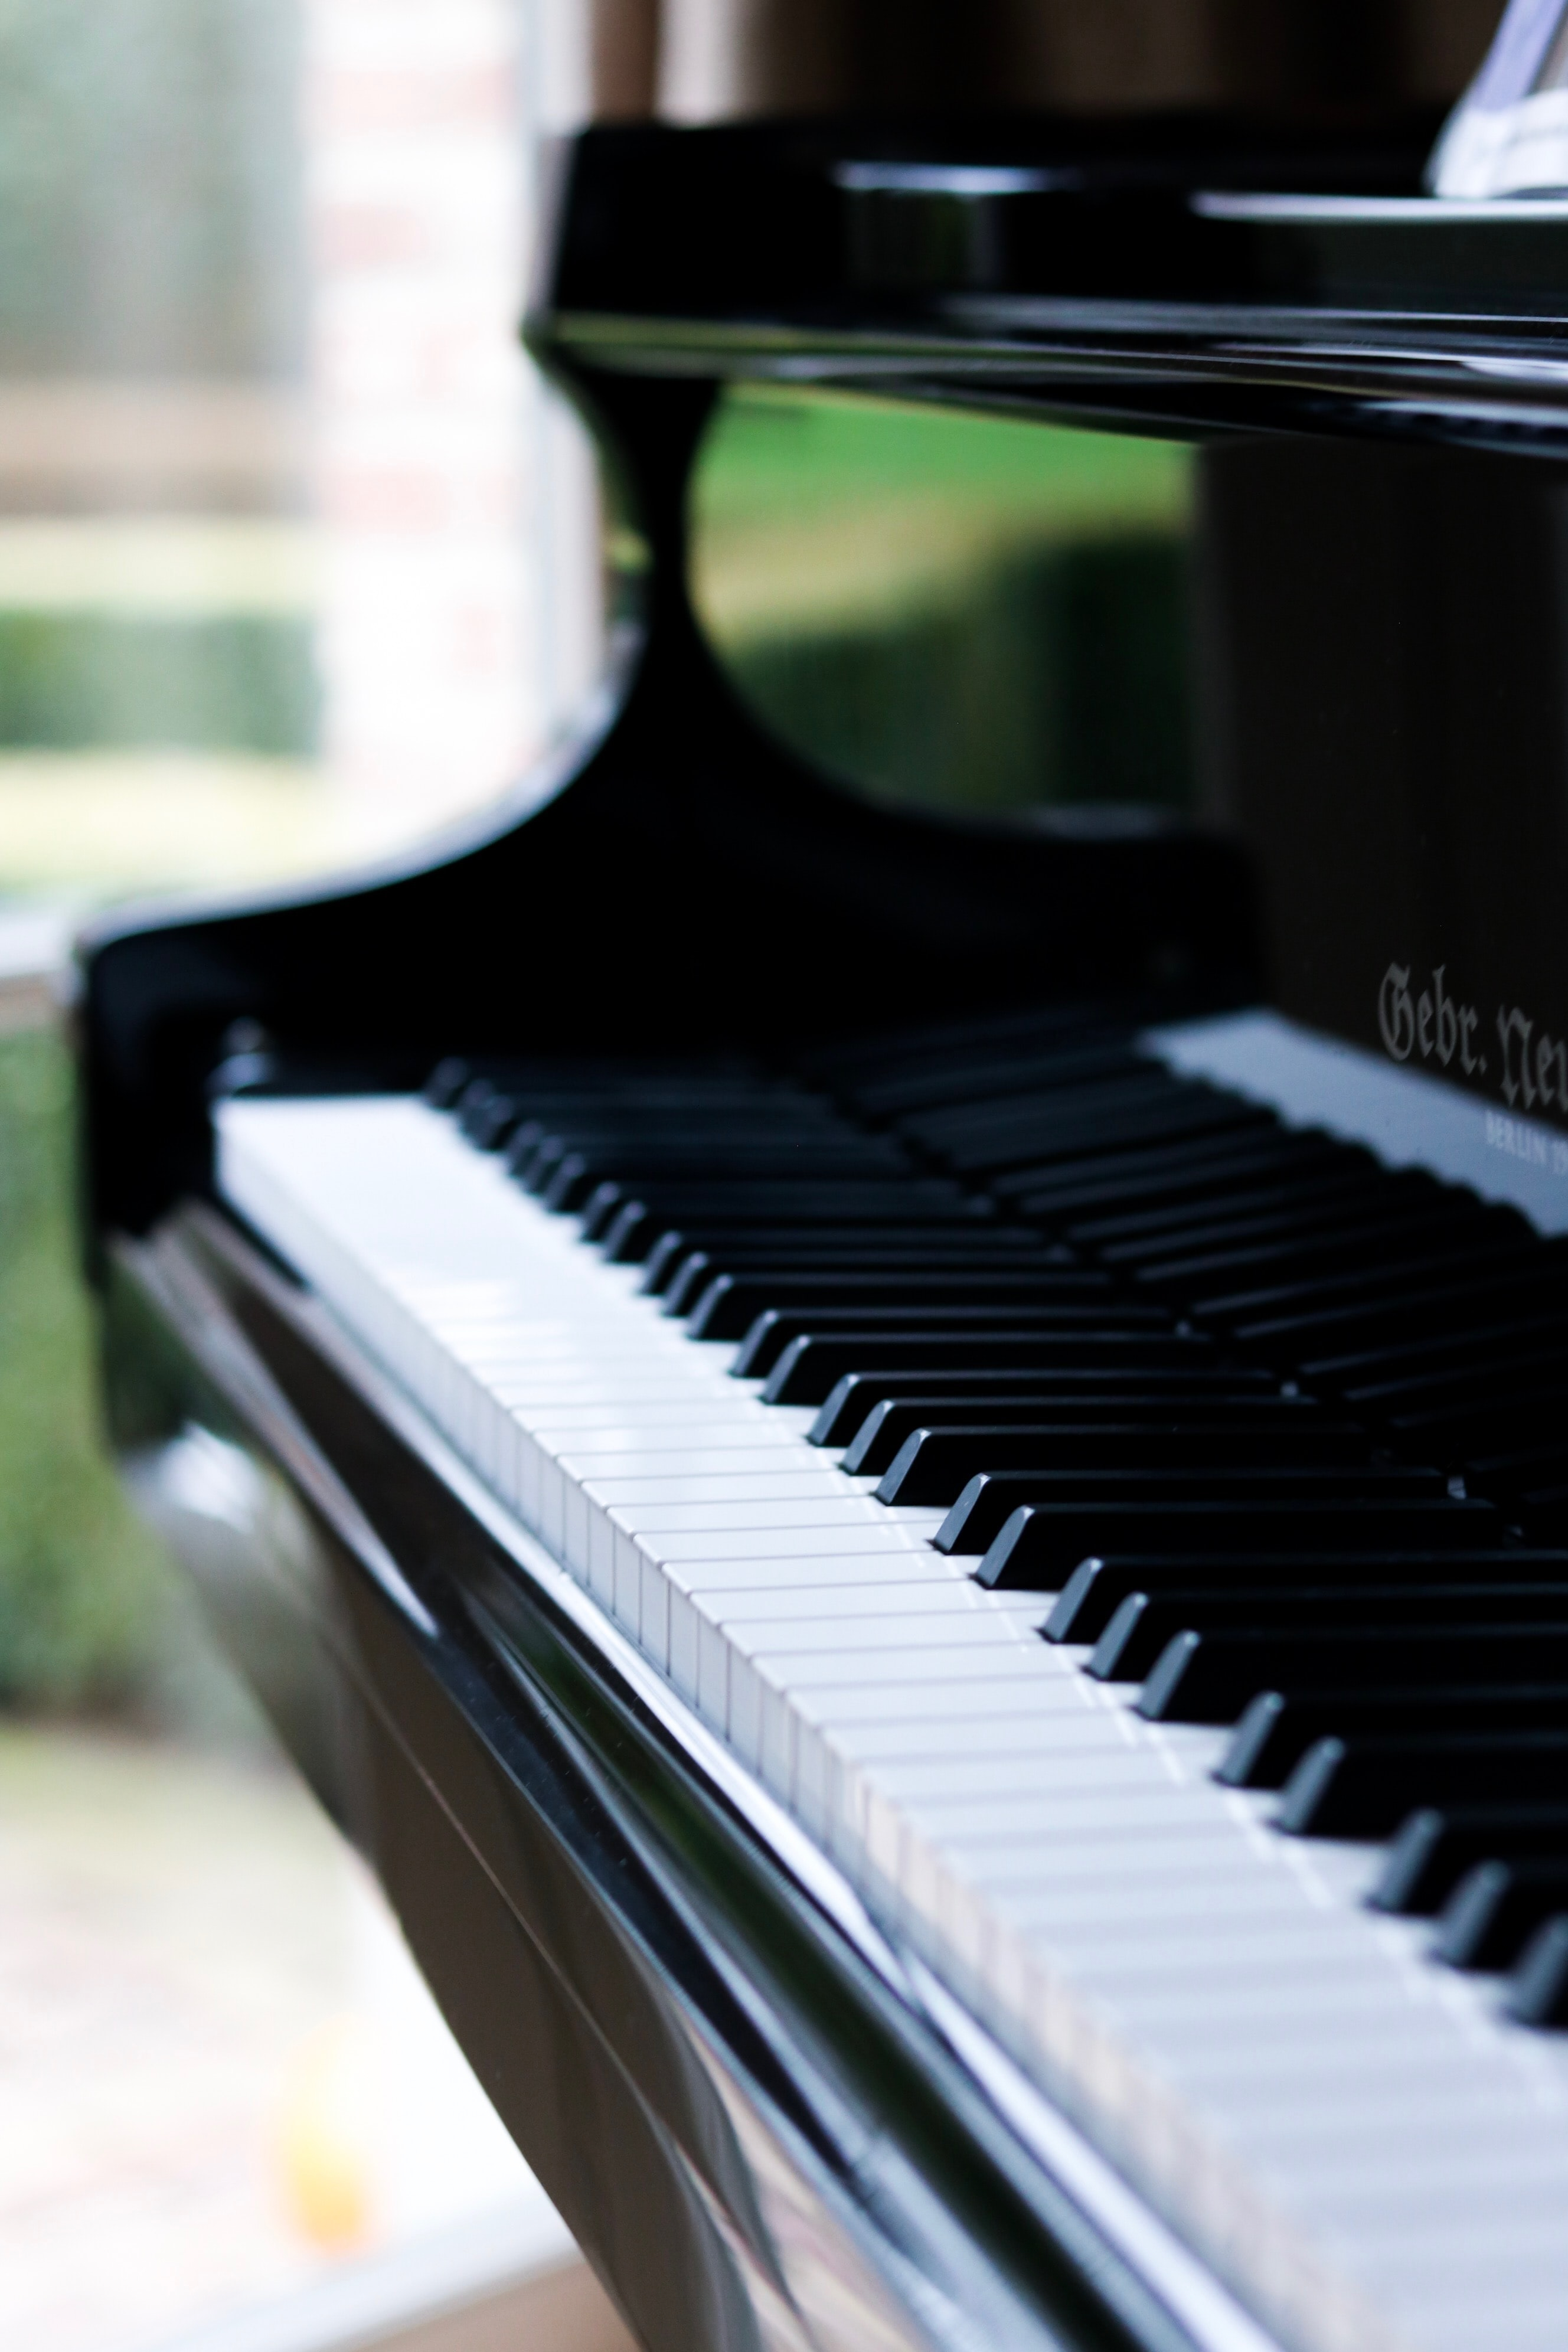 black and white piano in close-up photography